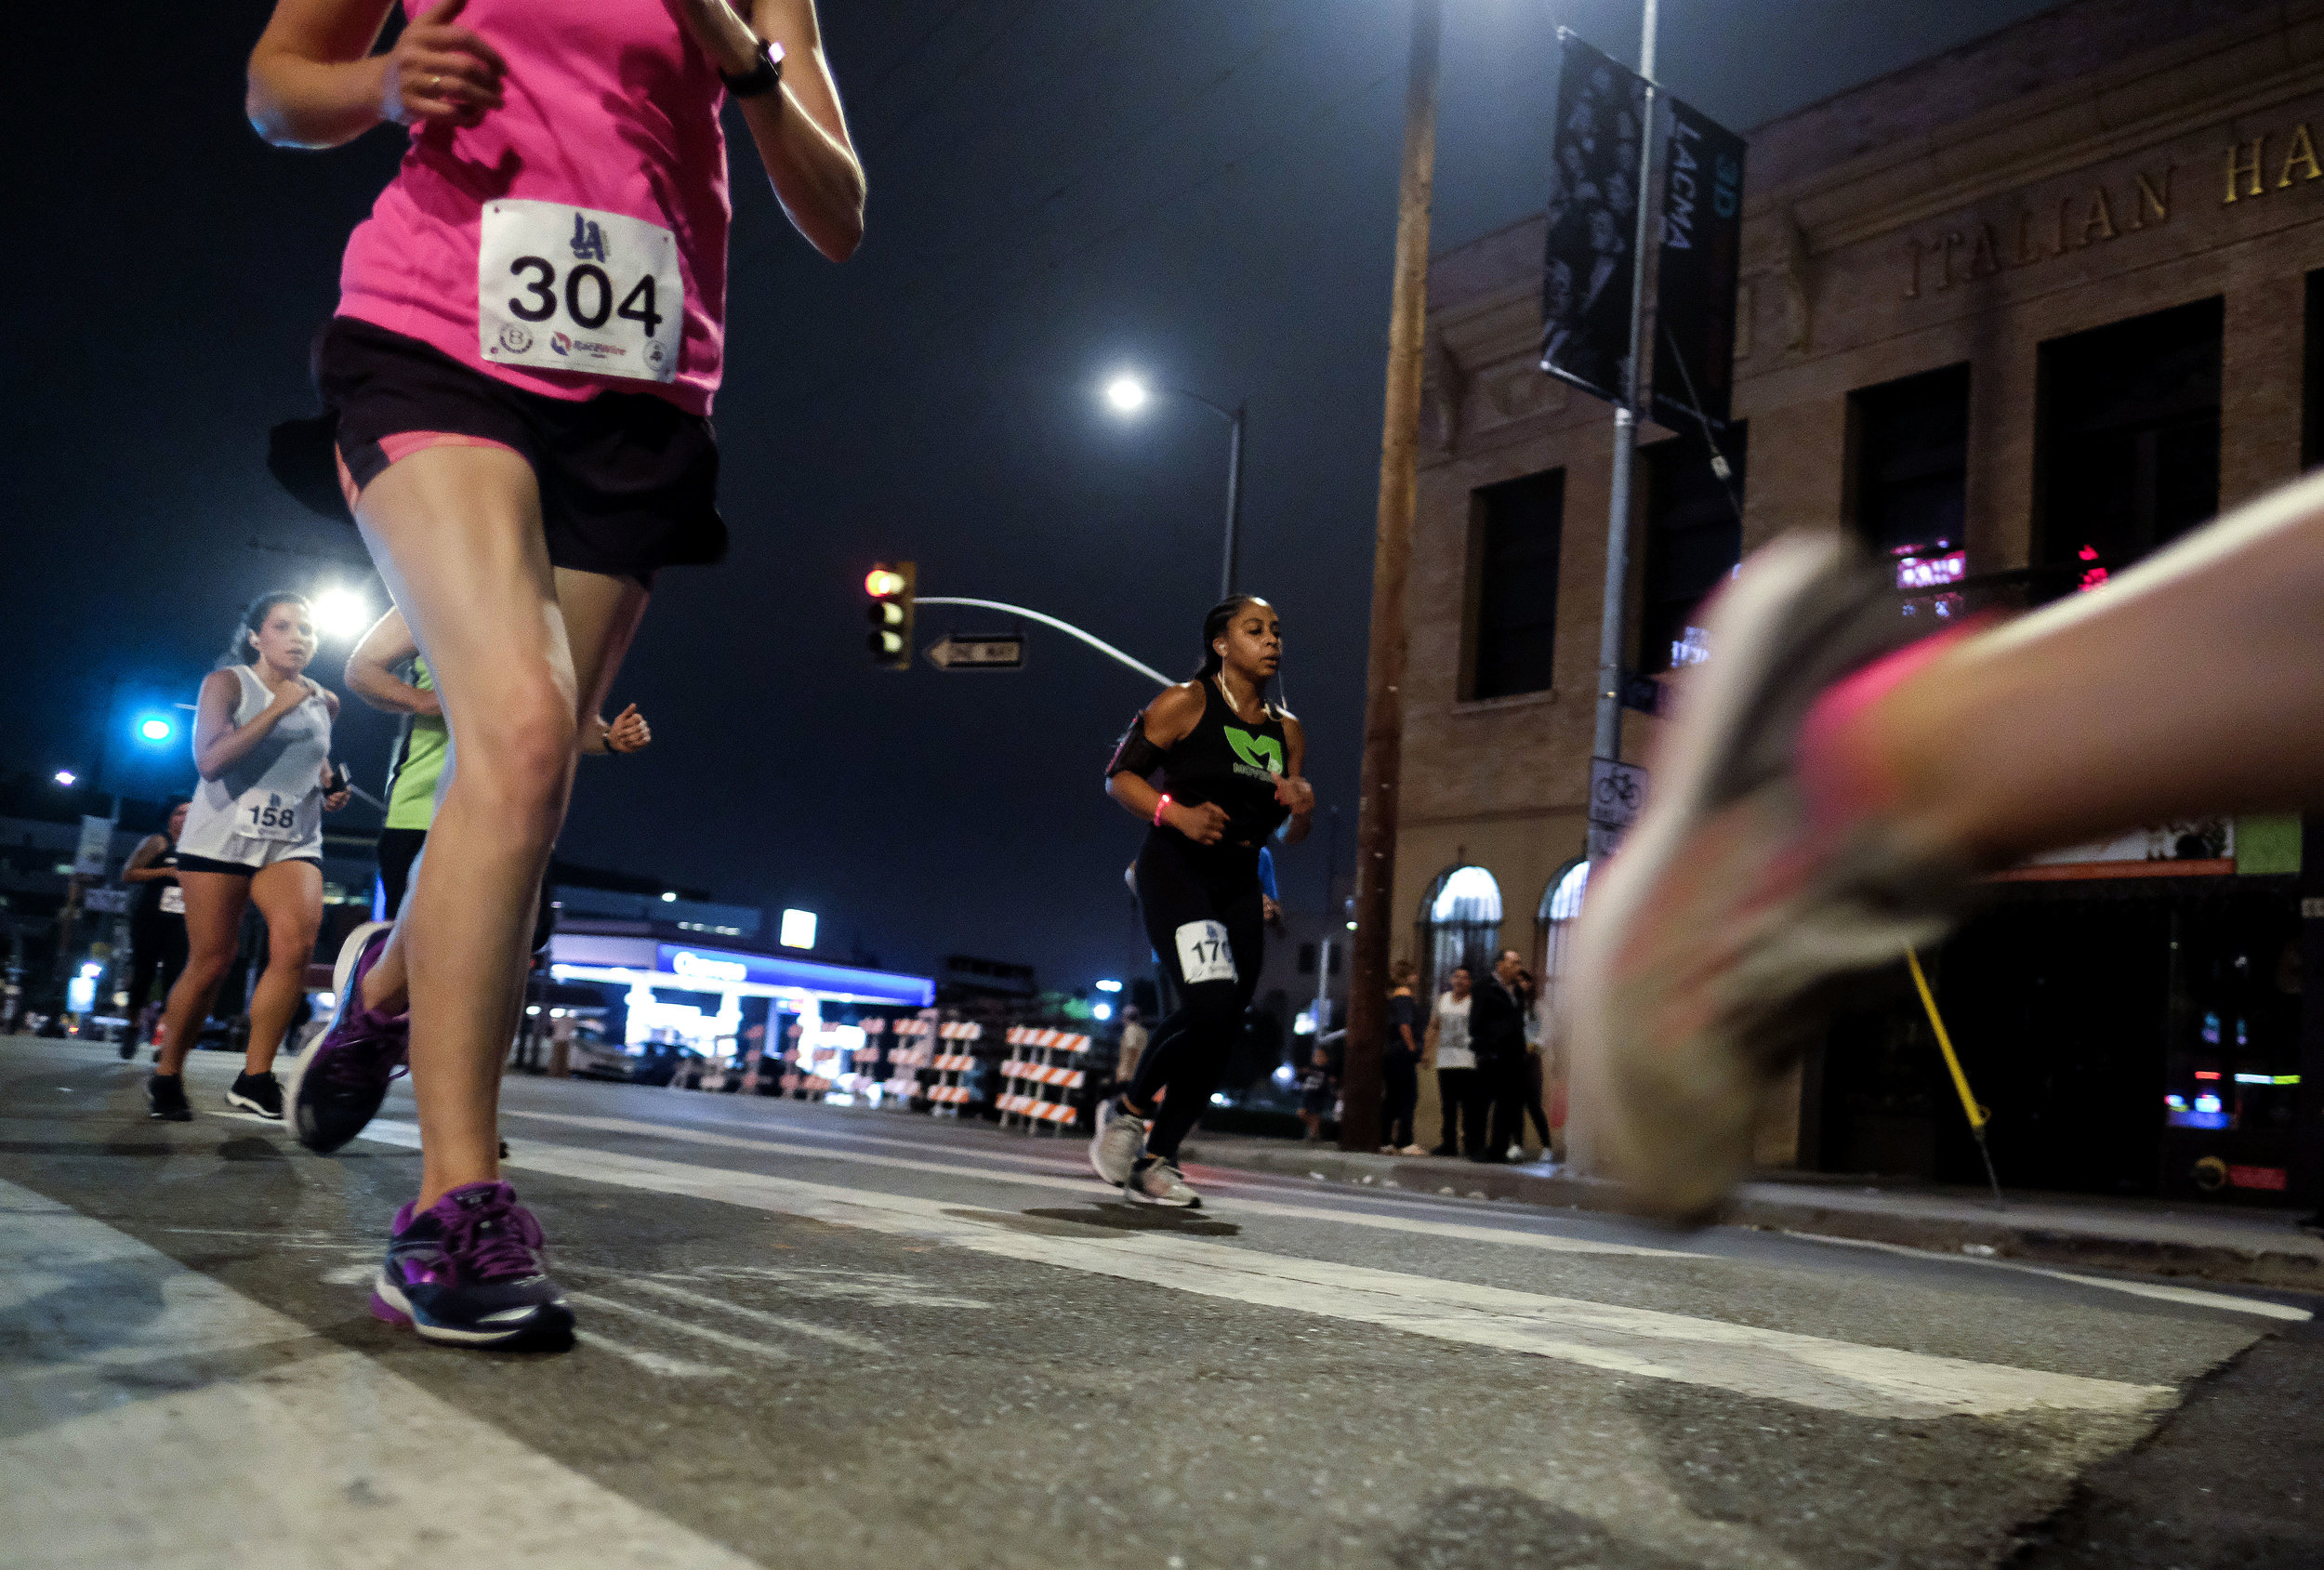 Participants run during the ``Happy Birthday L.A. 5K 2018'' in downtown Los Angeles, the United States on Sept. 2, 2018. Thousands of runners participated in the event to commemorate the Los Angeles City's 237th birthday.